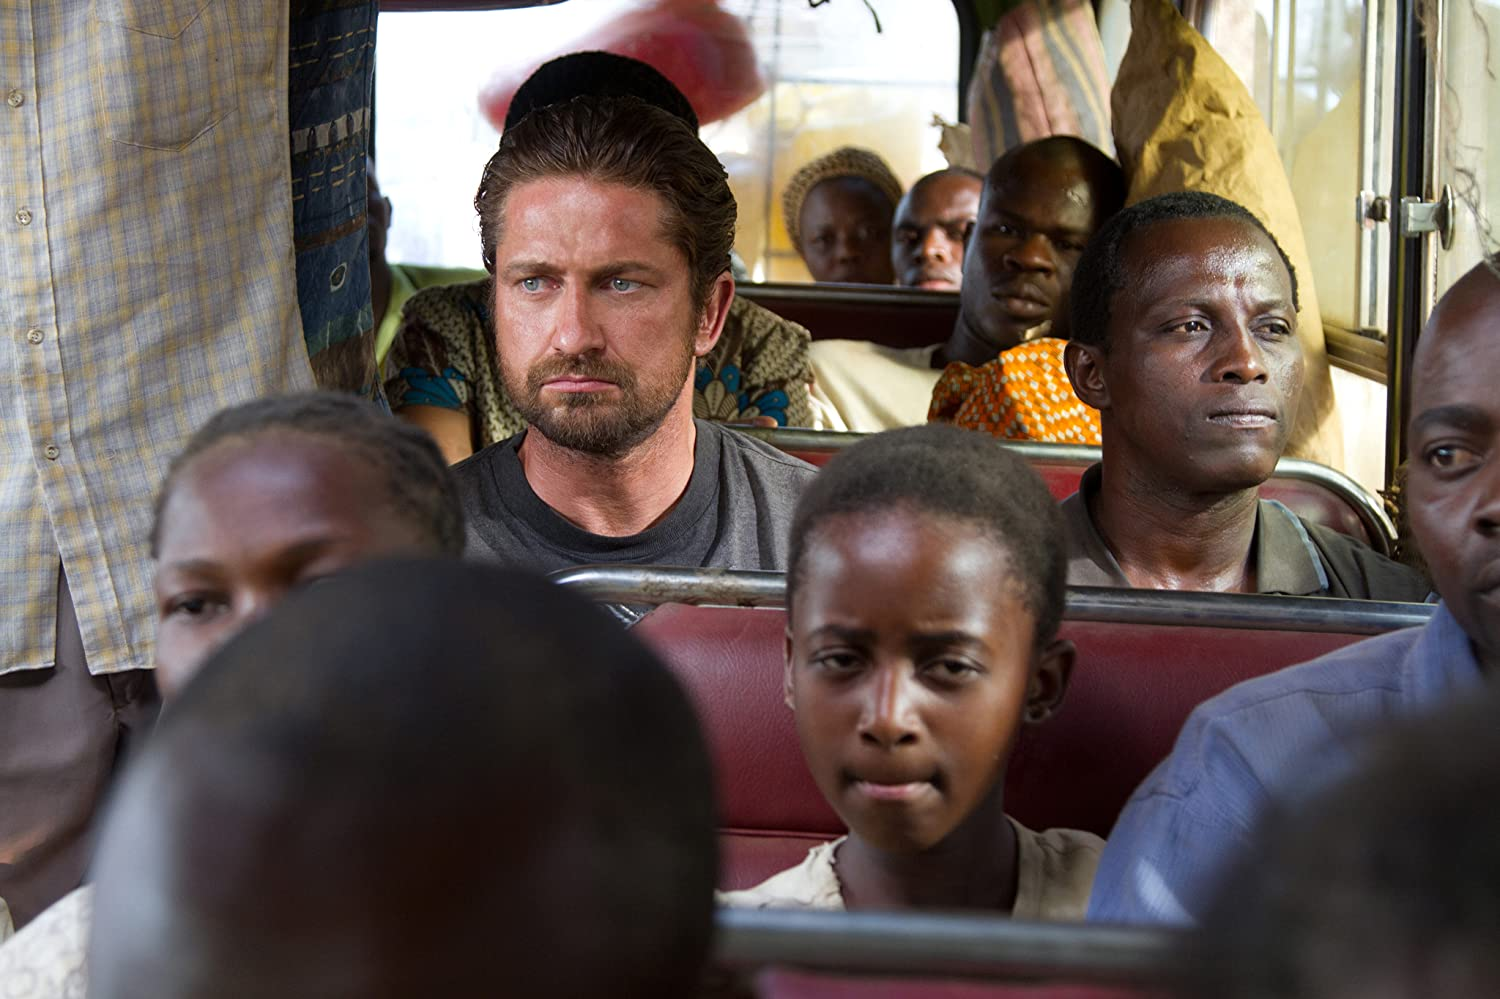 Gerard Butler and Souleymane Sy Savane in Machine Gun Preacher (2011)